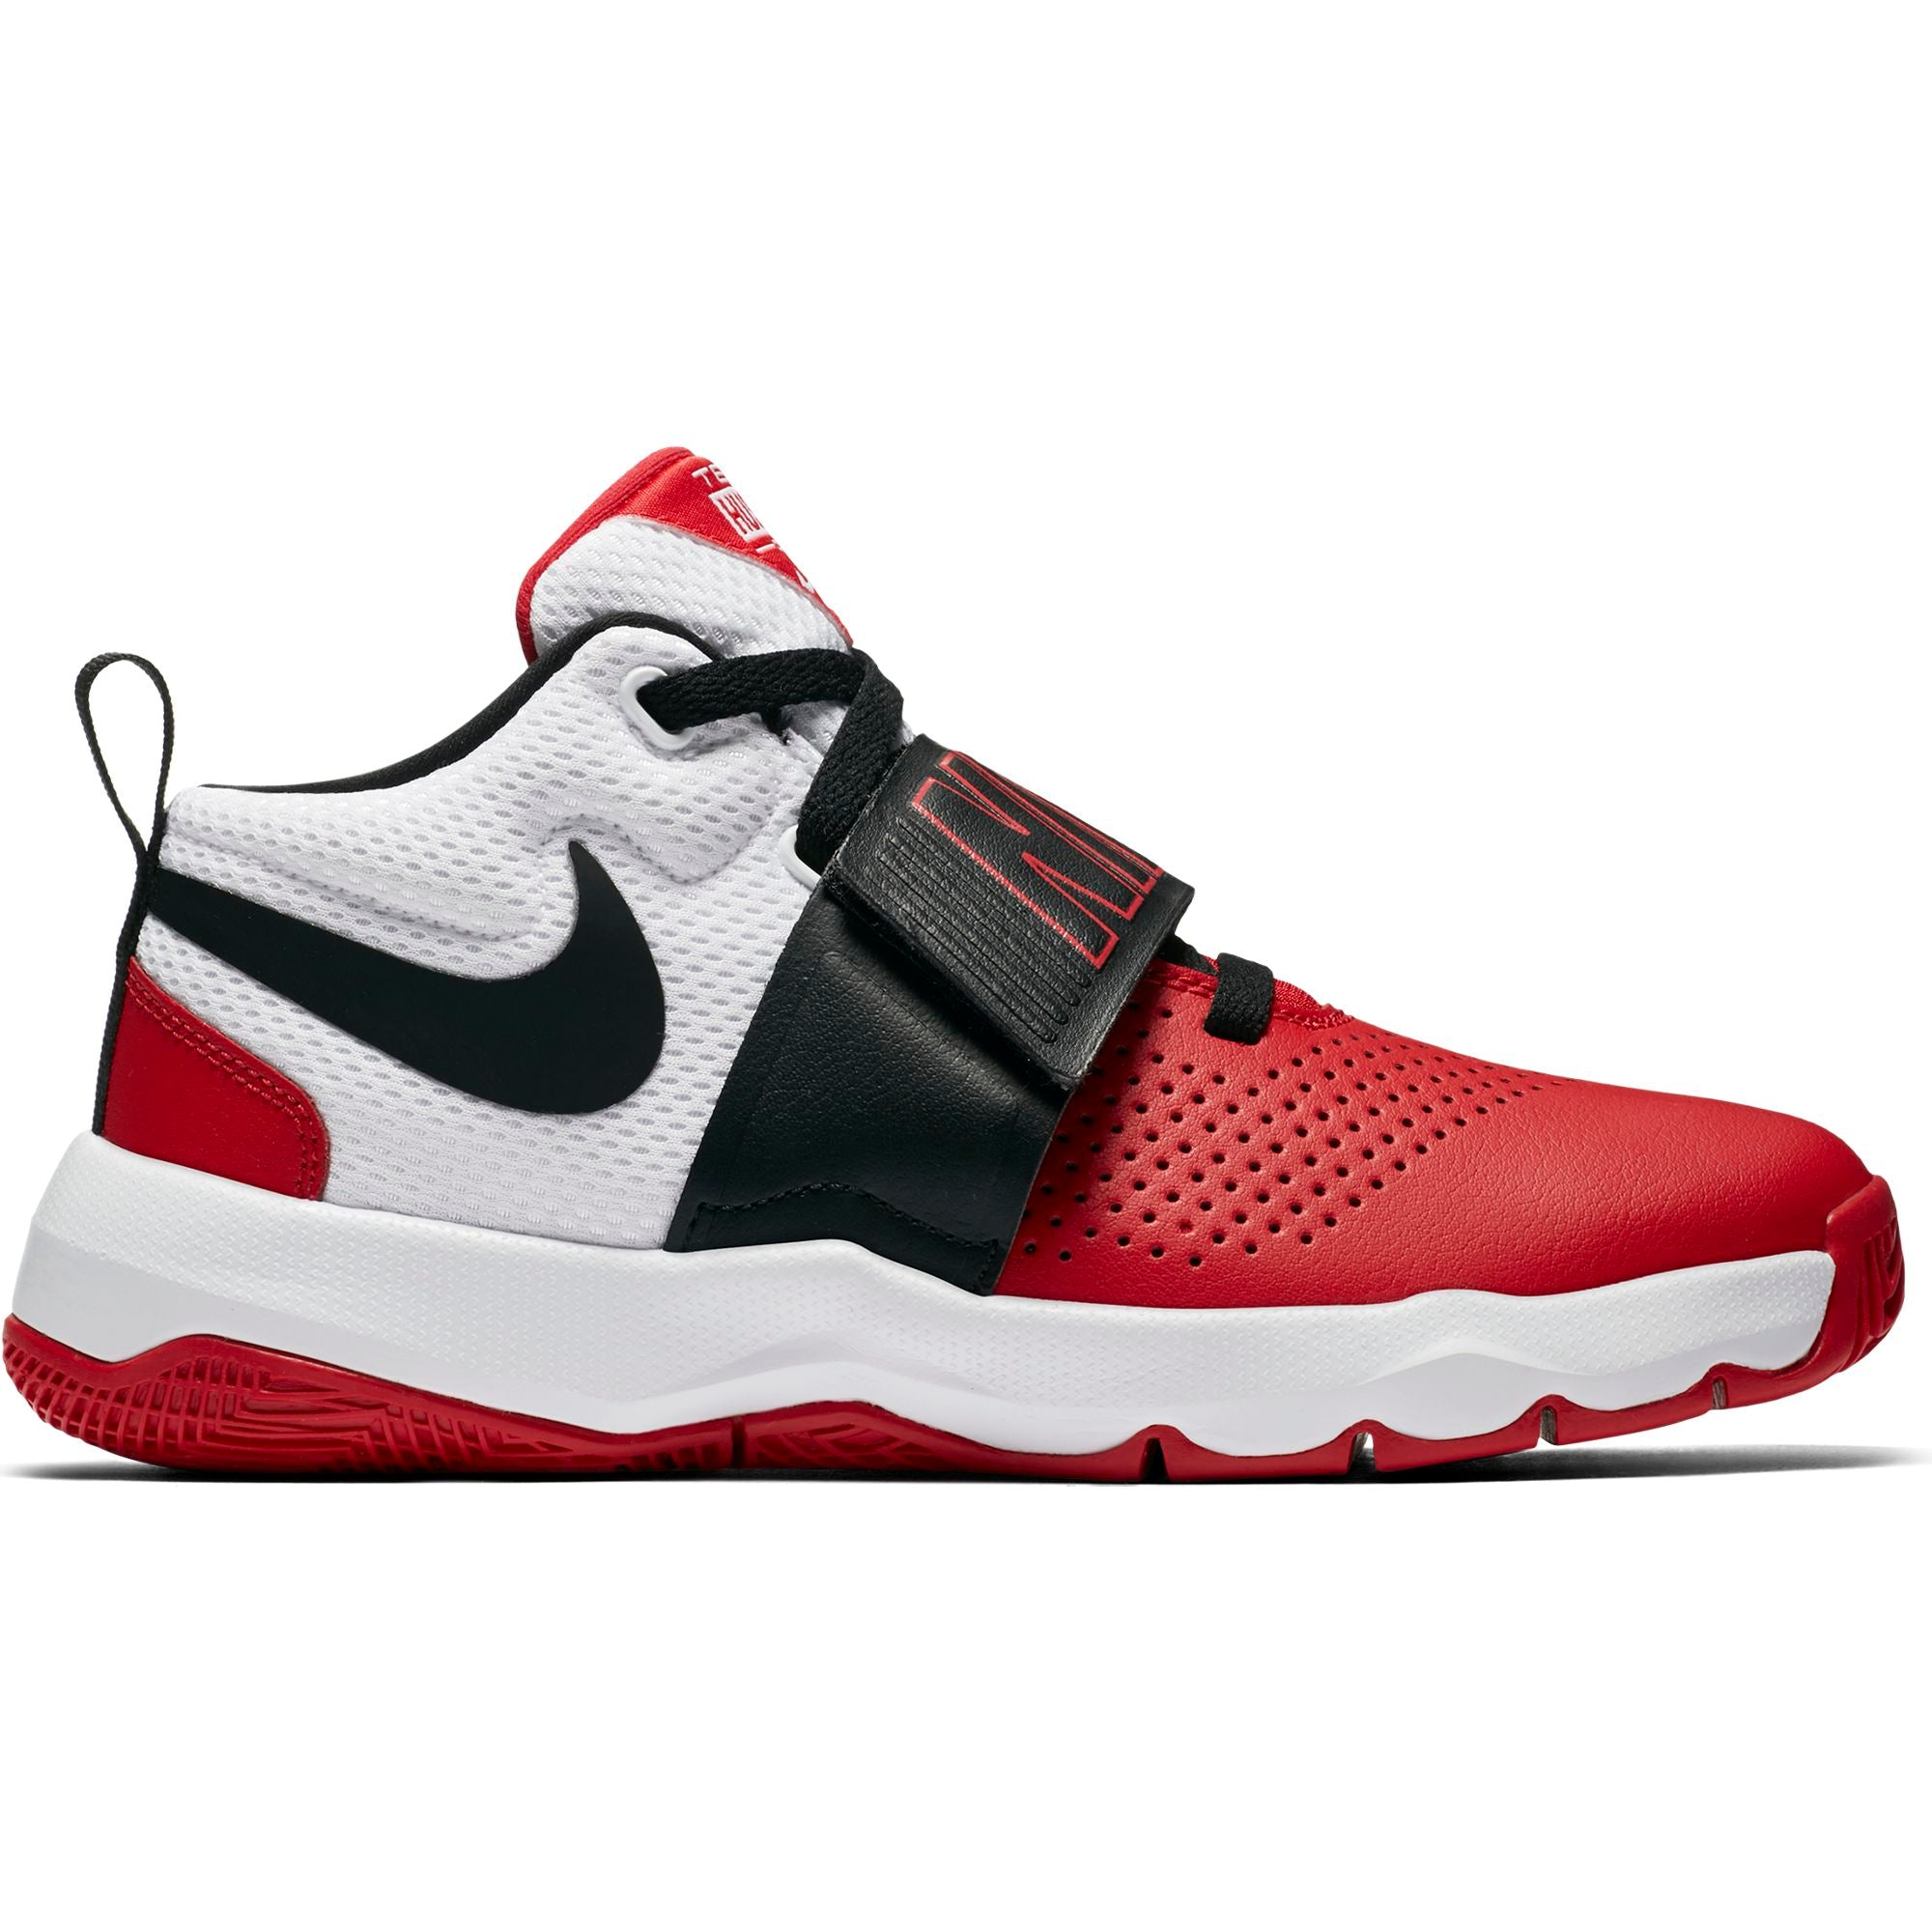 Nike Kids Team Hustle D 8  Basketball Boot/Shoe - University Red/Black/White